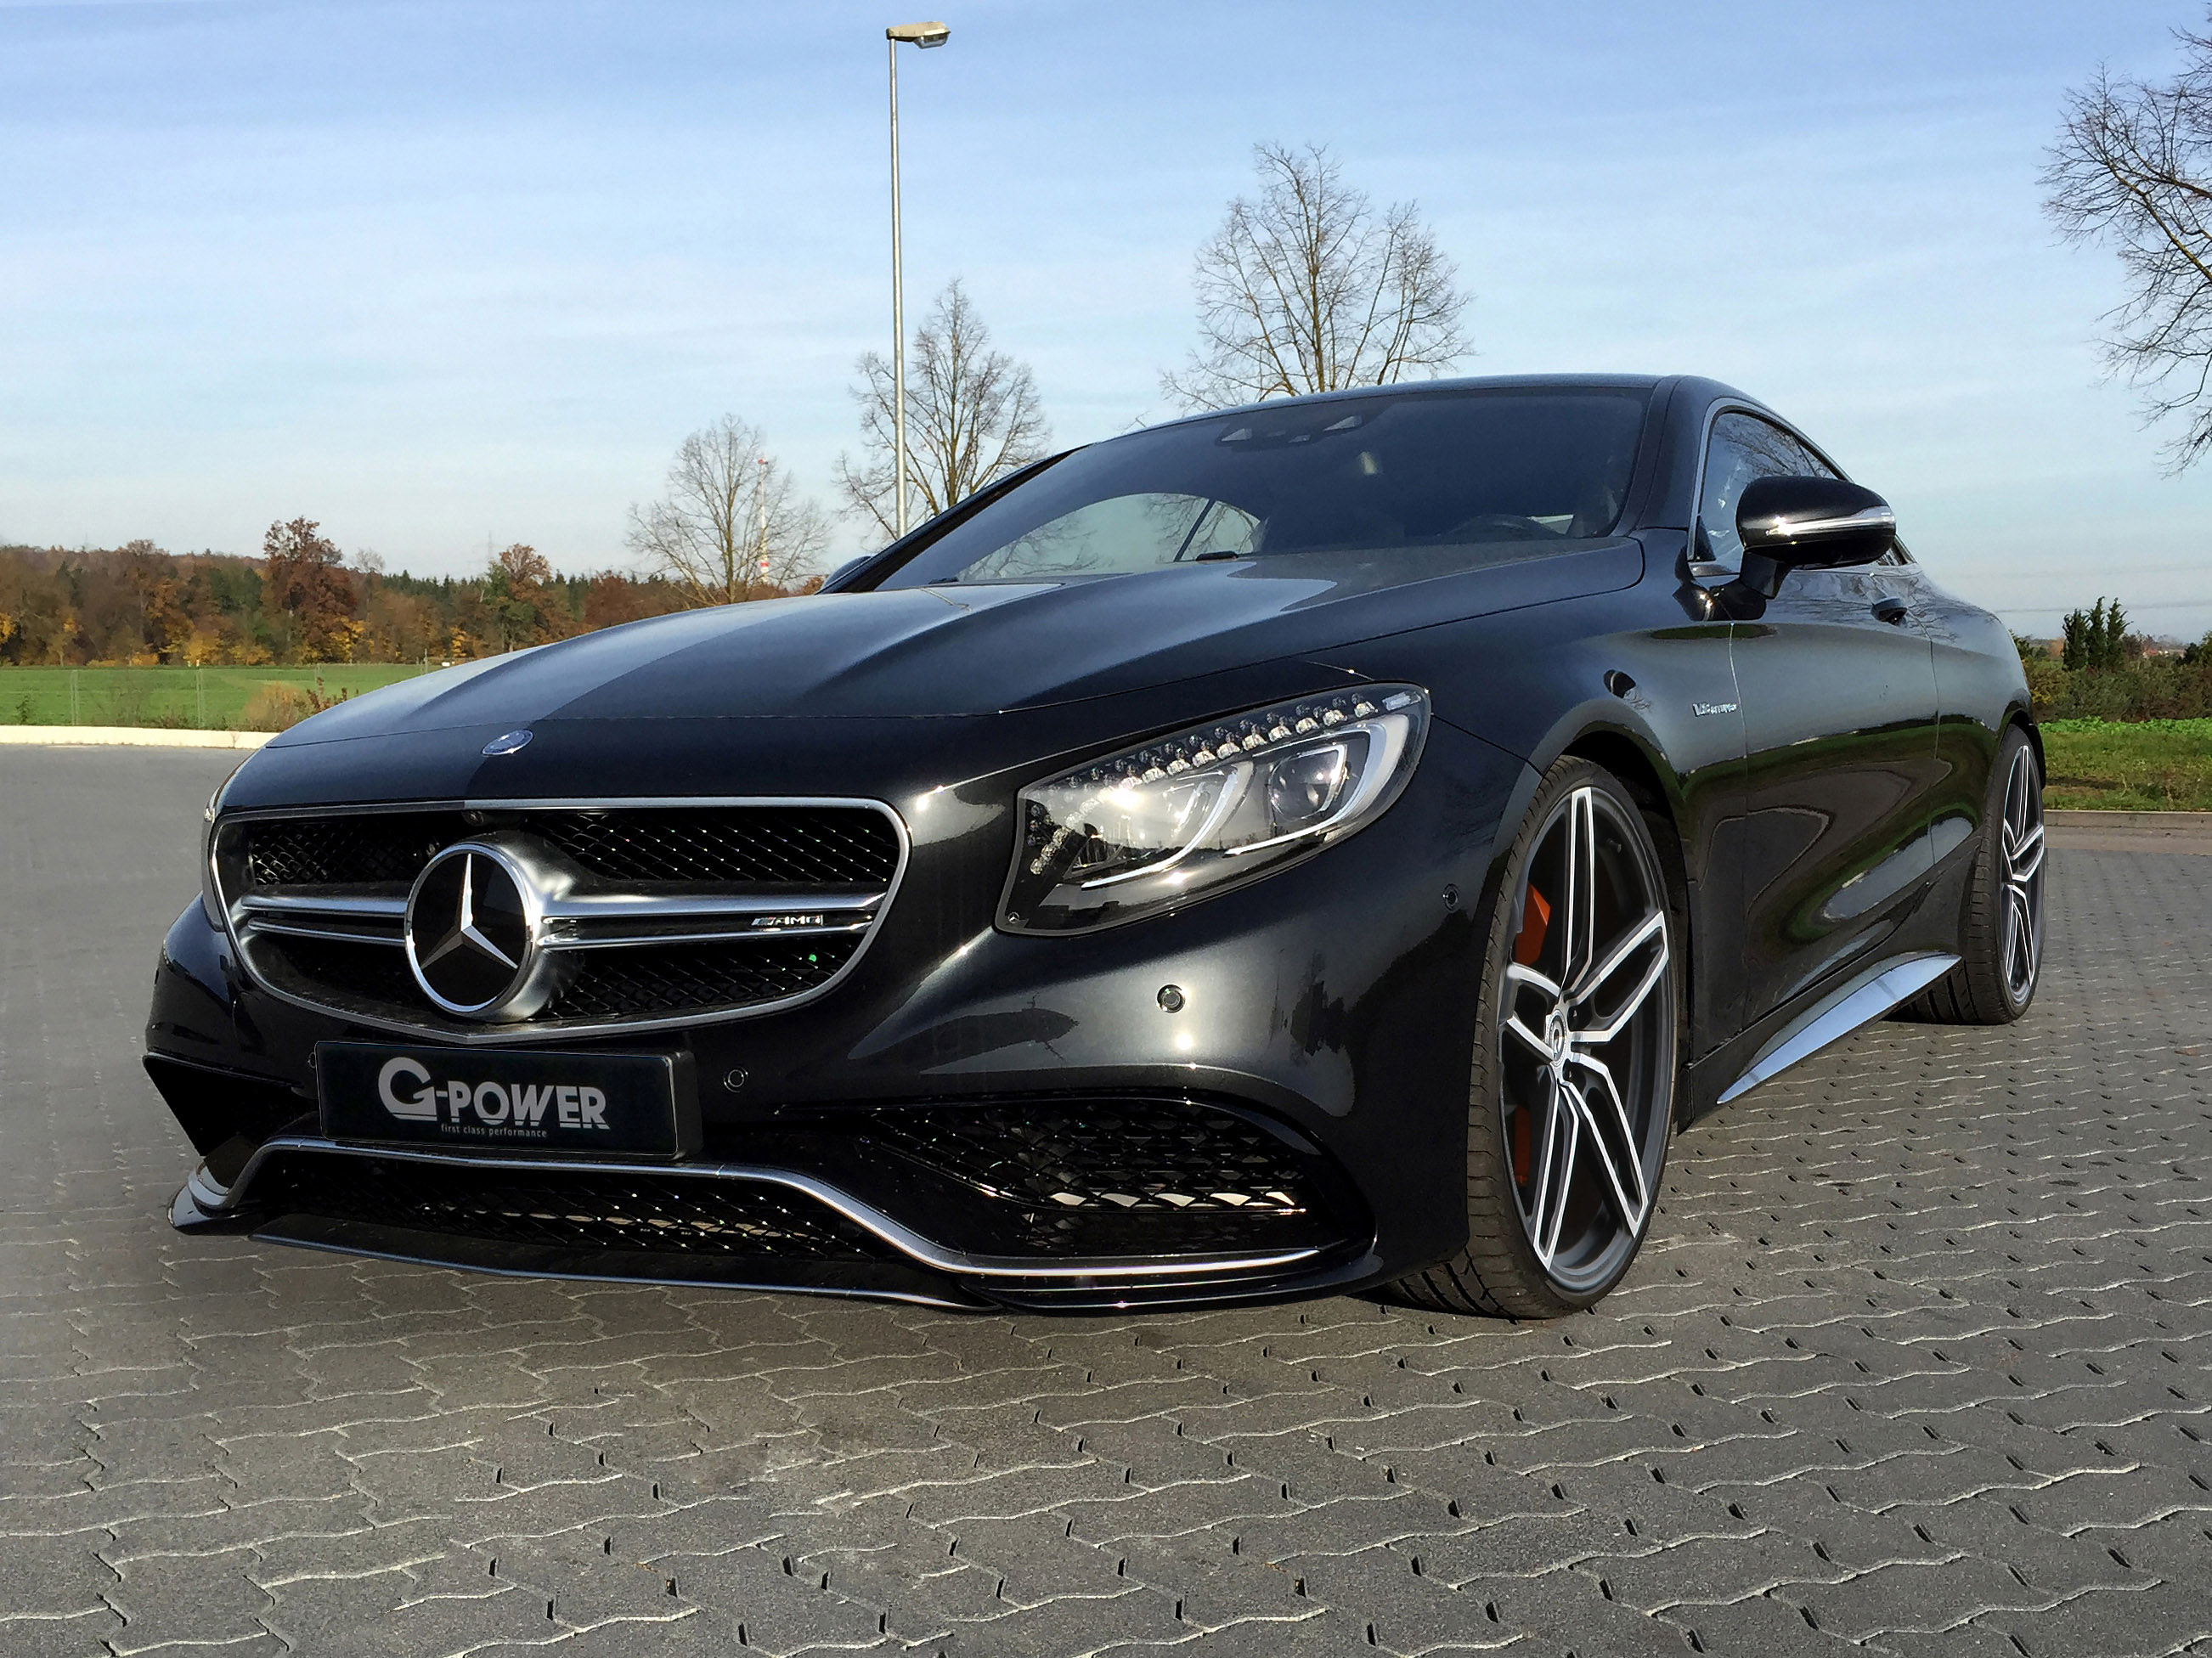 2014 g power mercedes benz s63 amg coupe hd pictures for Mercedes benz s63 amg 2014